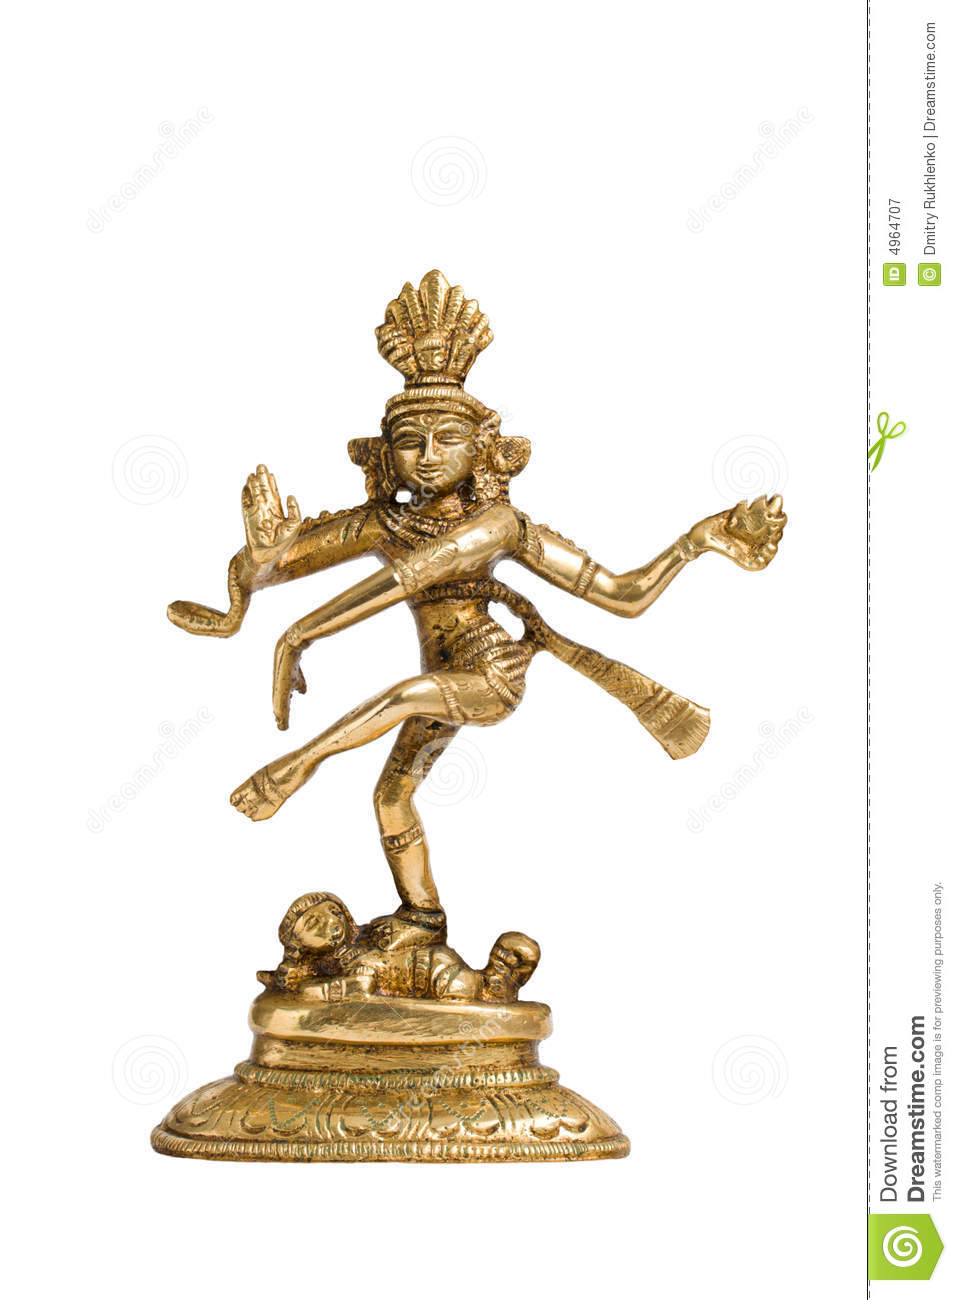 dance essay in lord mysticism Similarly, in this essay the word god is used interchangeably with buddha, kuan  yin, krishna,  the buddhist mystic undergoes the same process  this  dancing prayer with music is an ecstatic practice towards the union with the  divine.